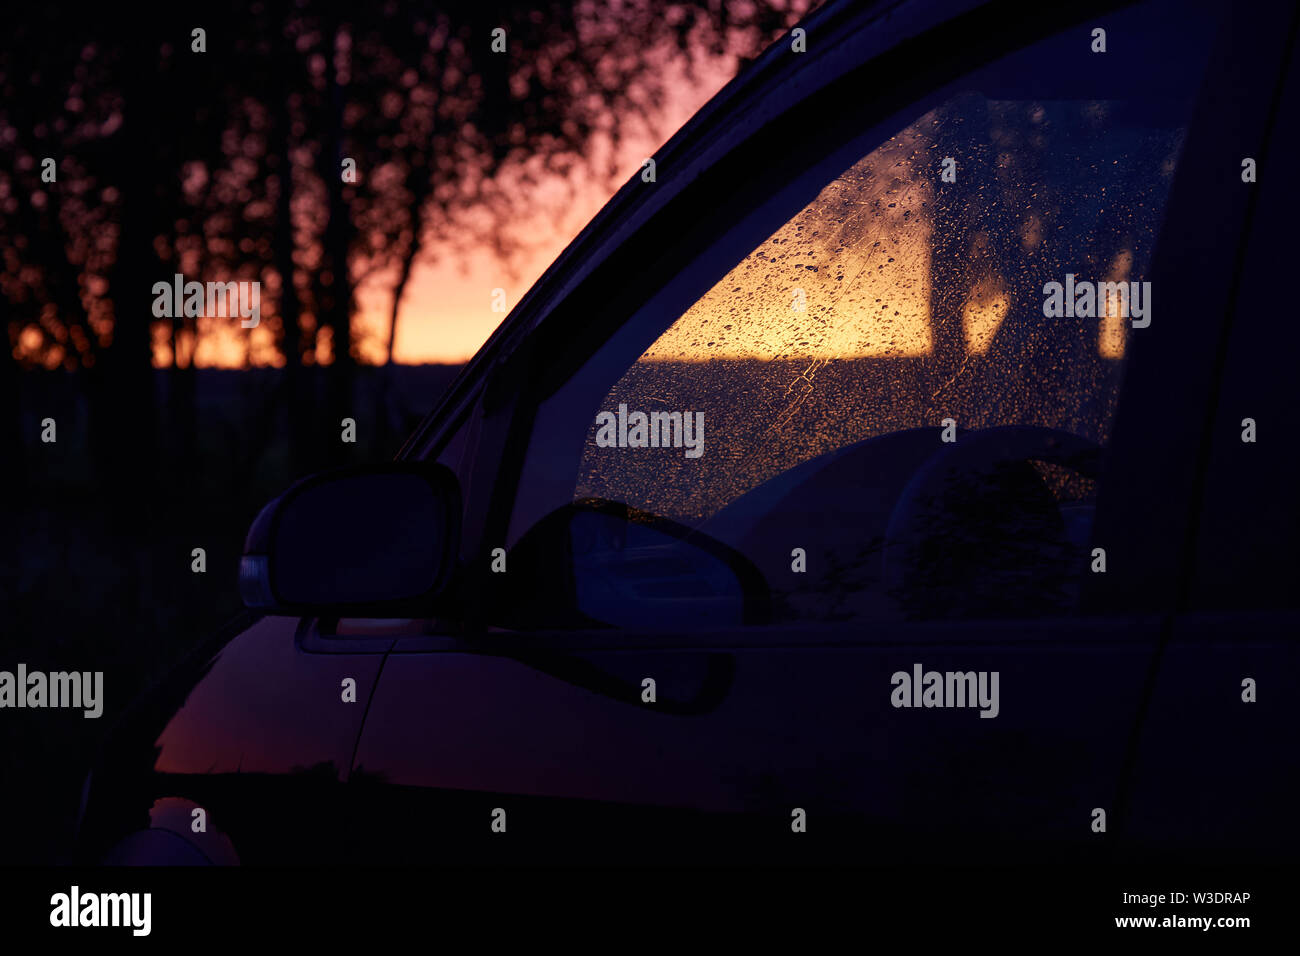 Car windshield covered with raindrops against sunset - Stock Image